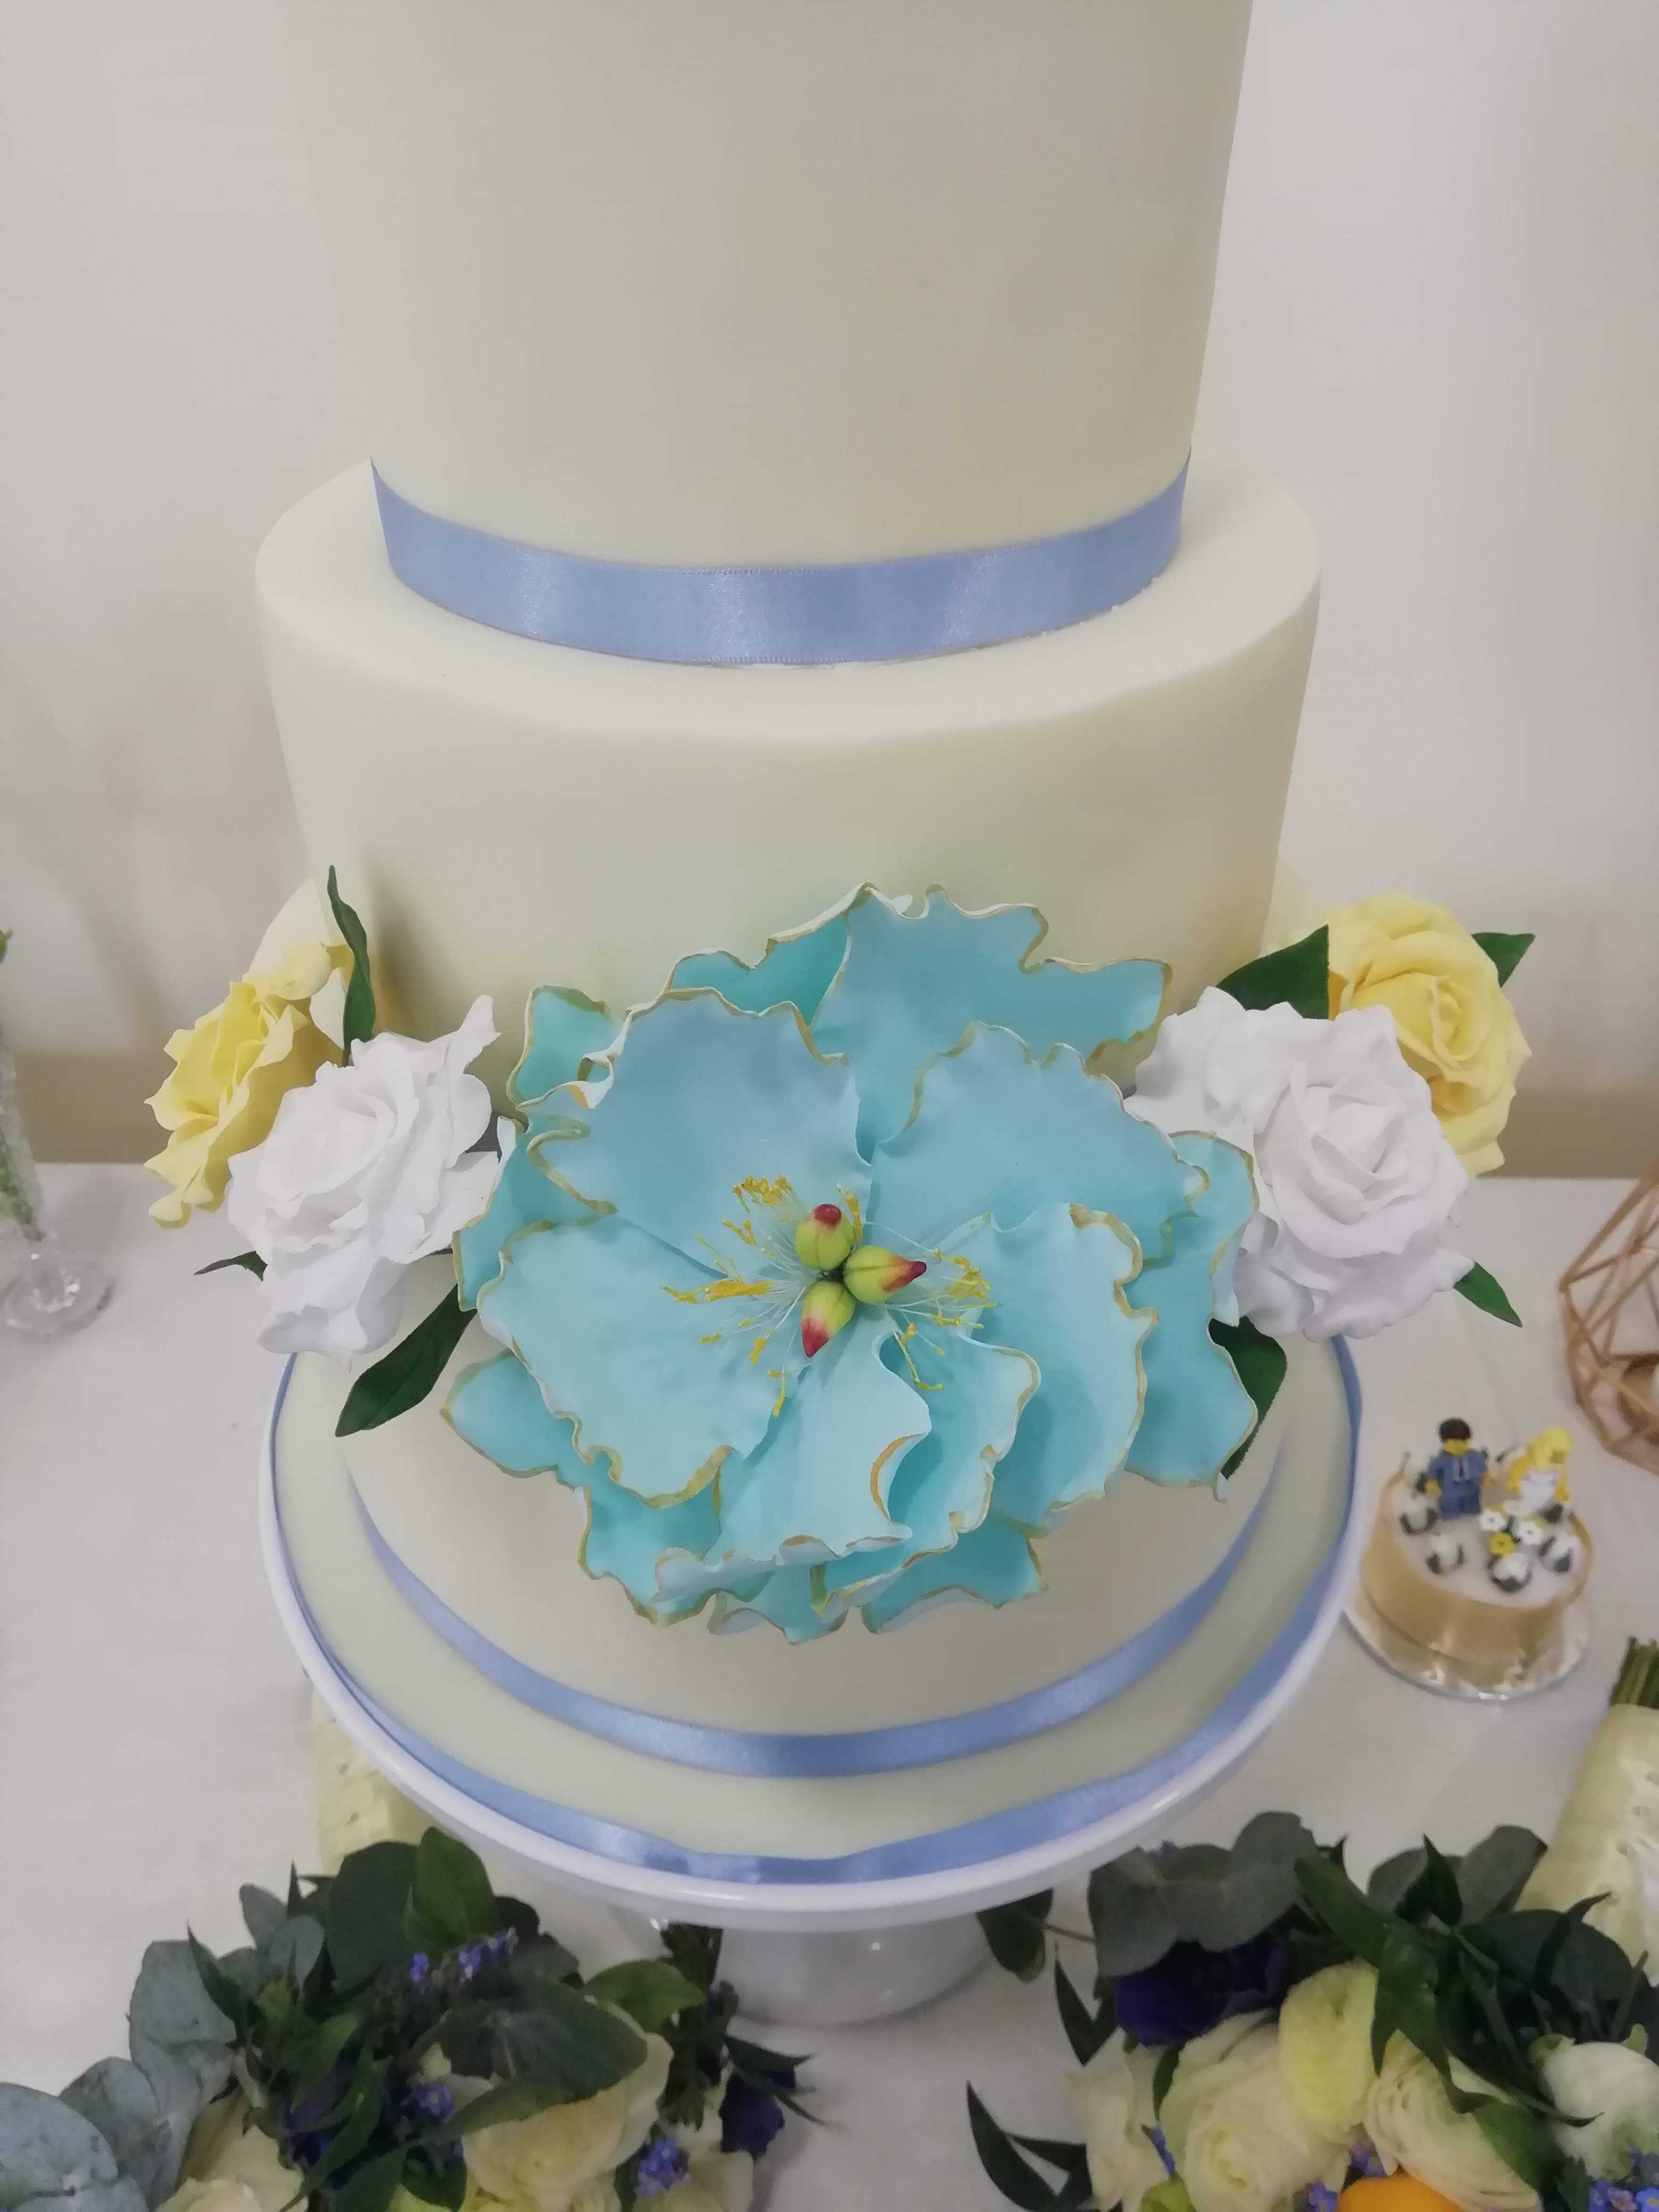 Bright blue peony with gold edge and white & yellow roses